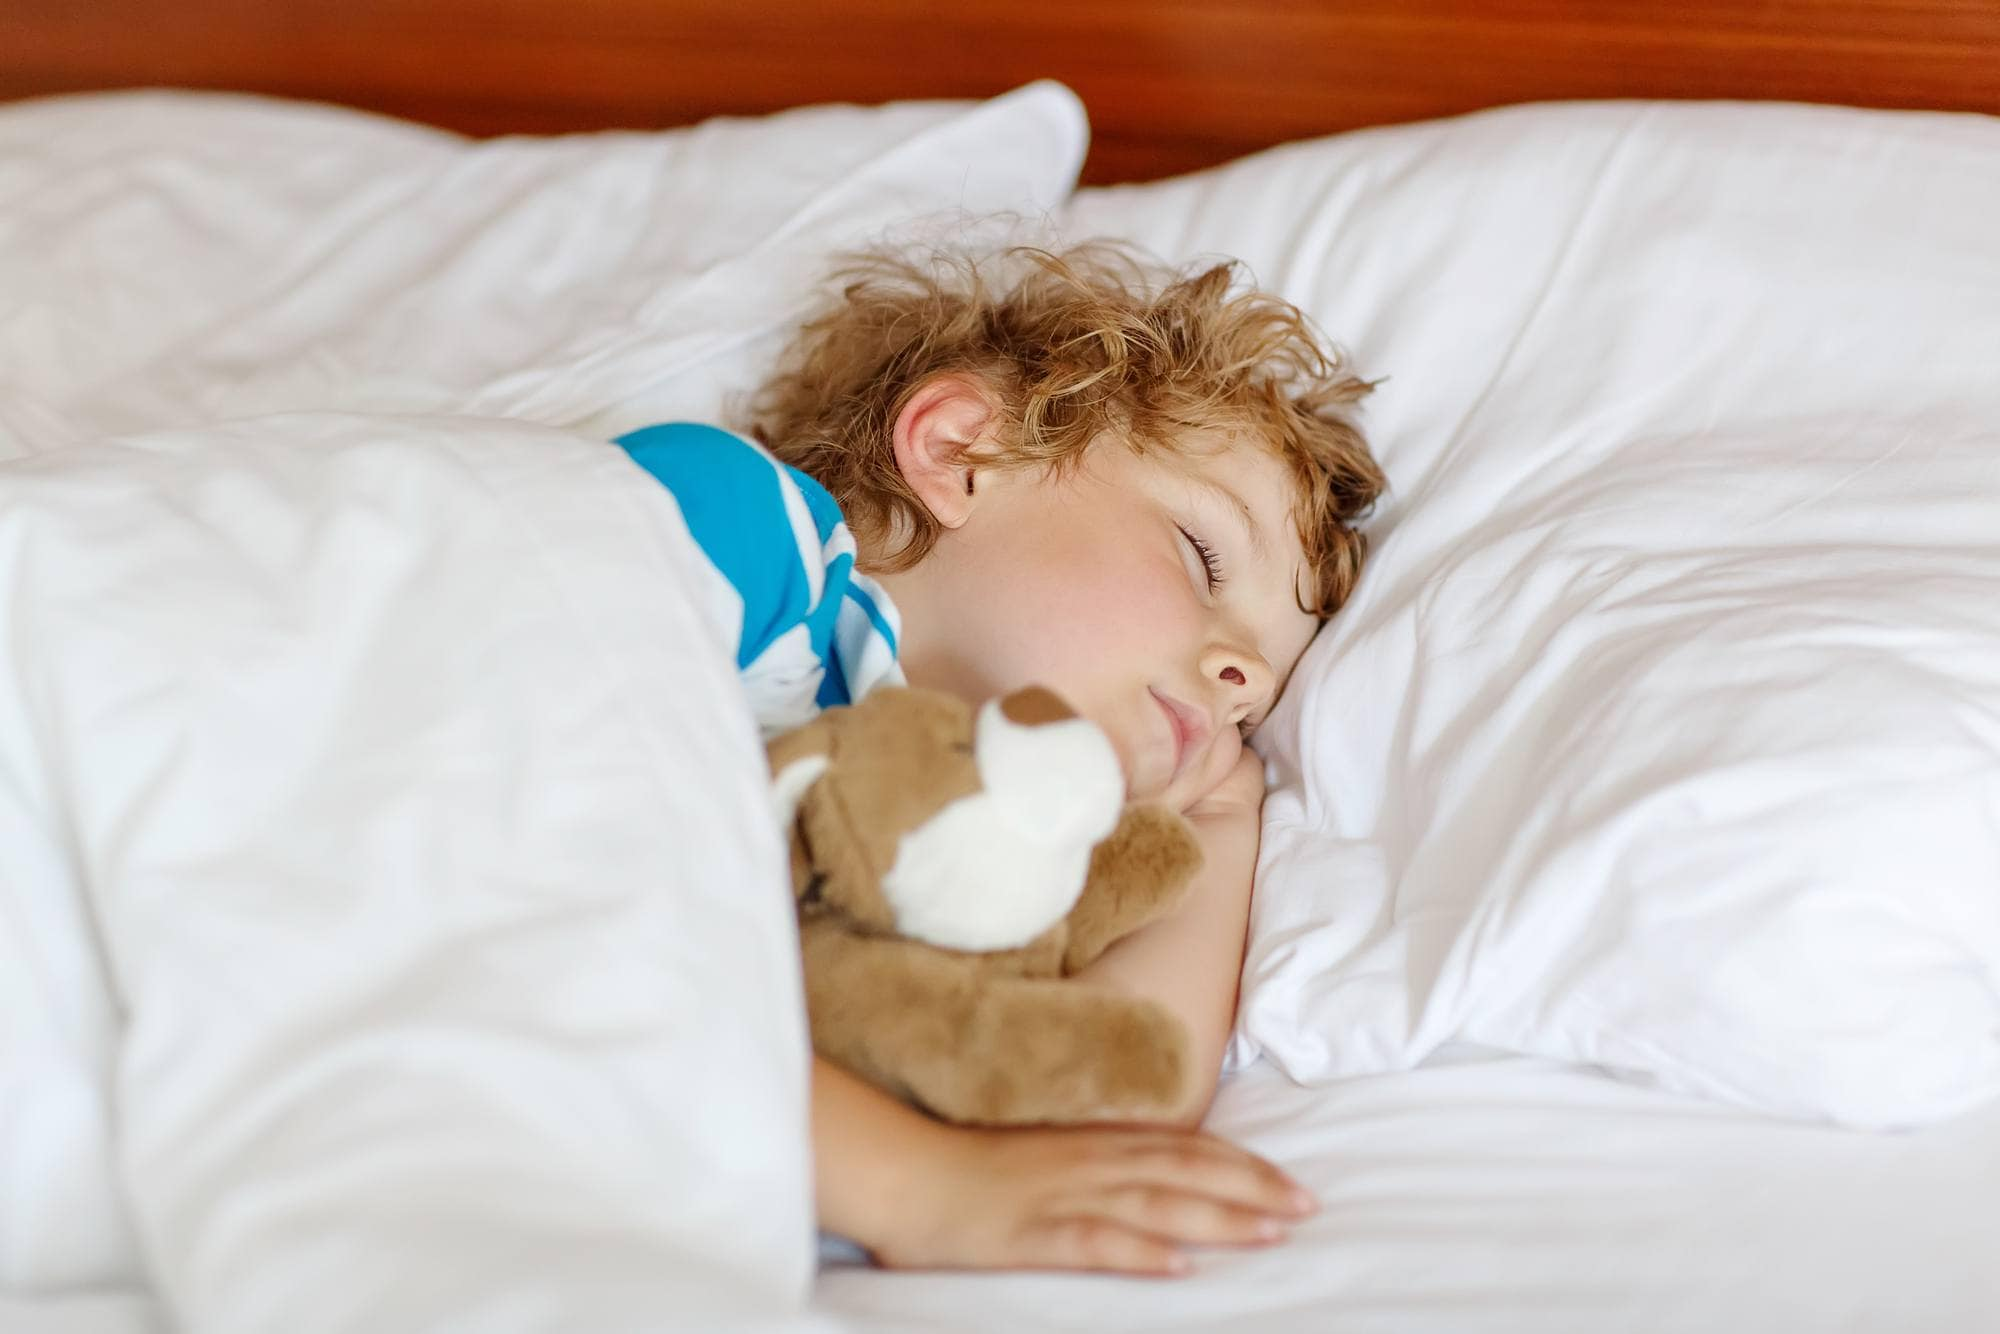 Bringing a sheet from home can make a hotel smell and feel more familiar for young children